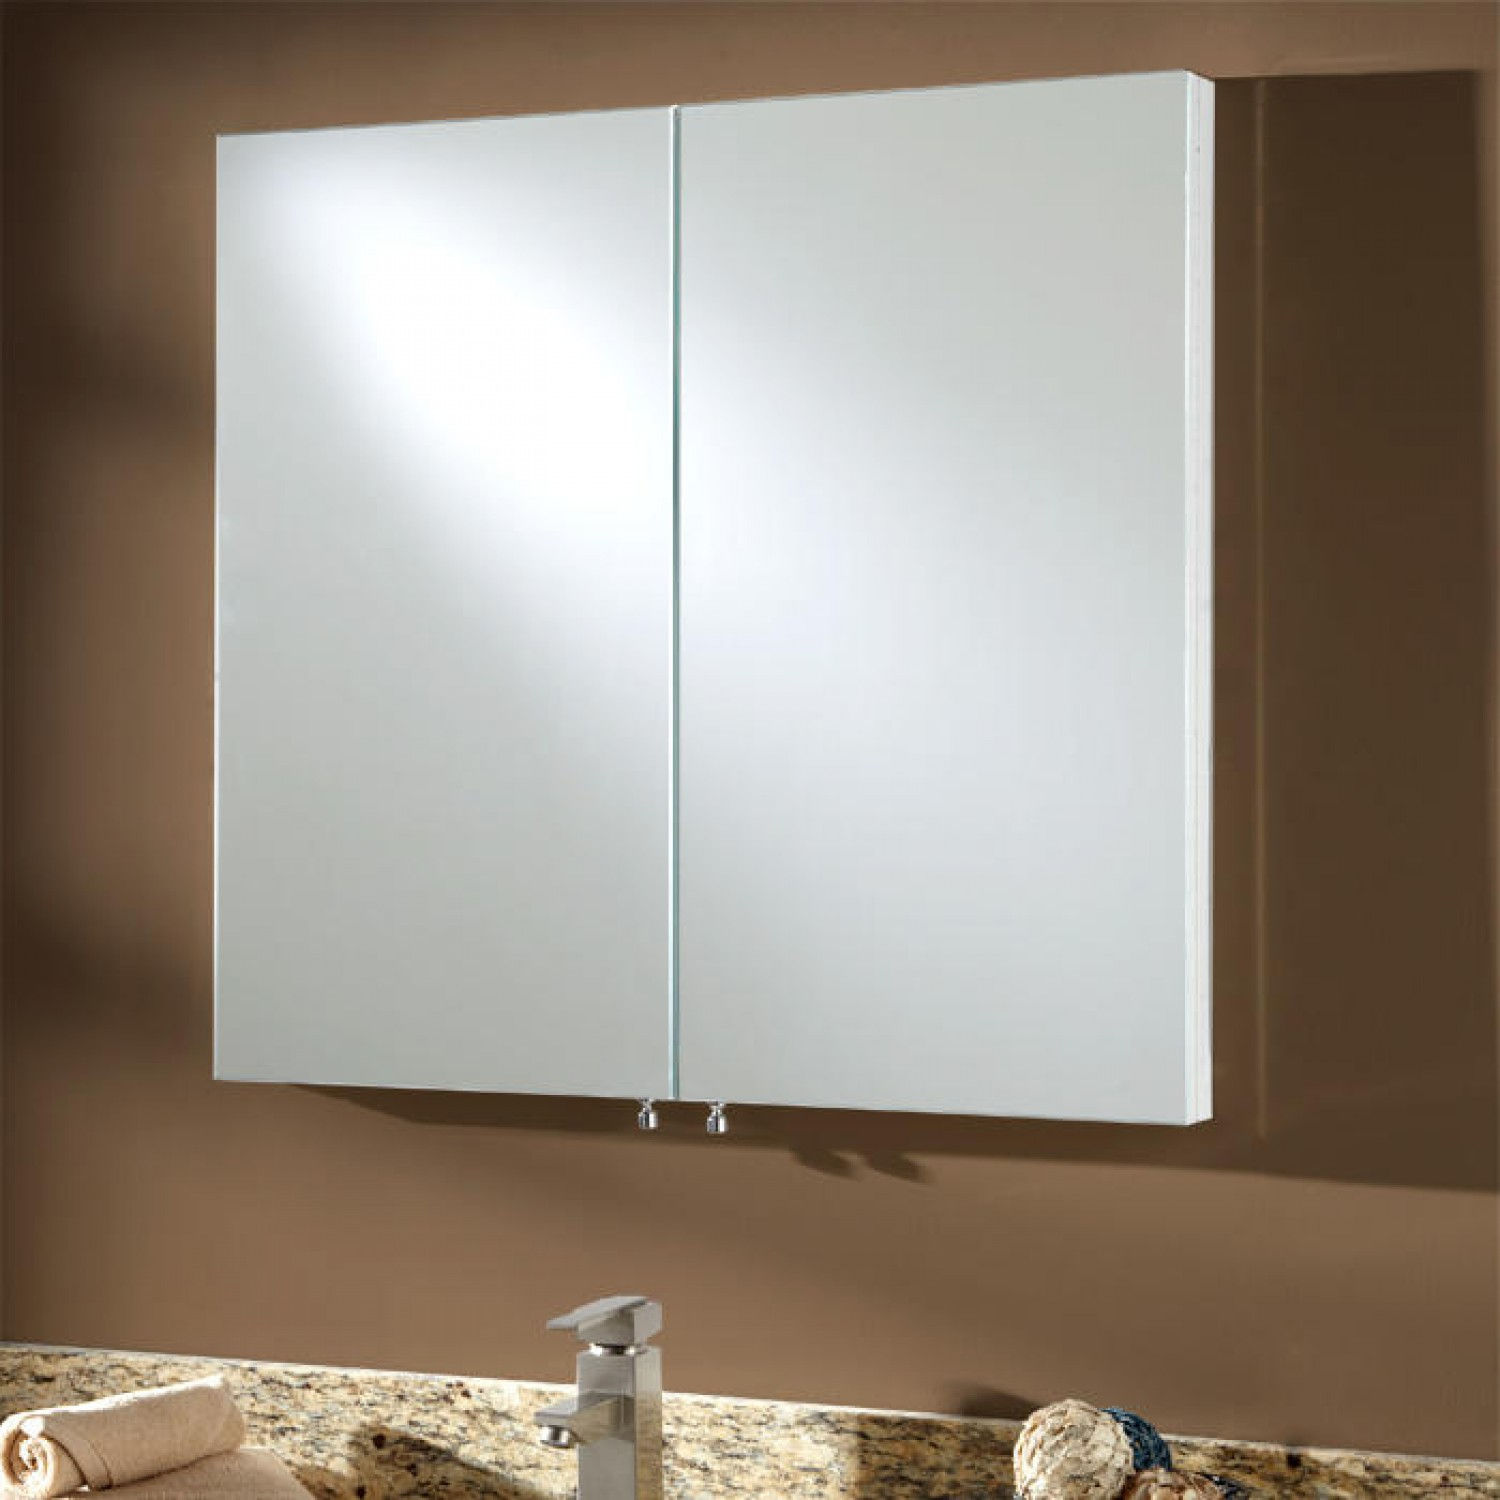 Large Recessed Medicine Cabinet No Mirror With Two Doors